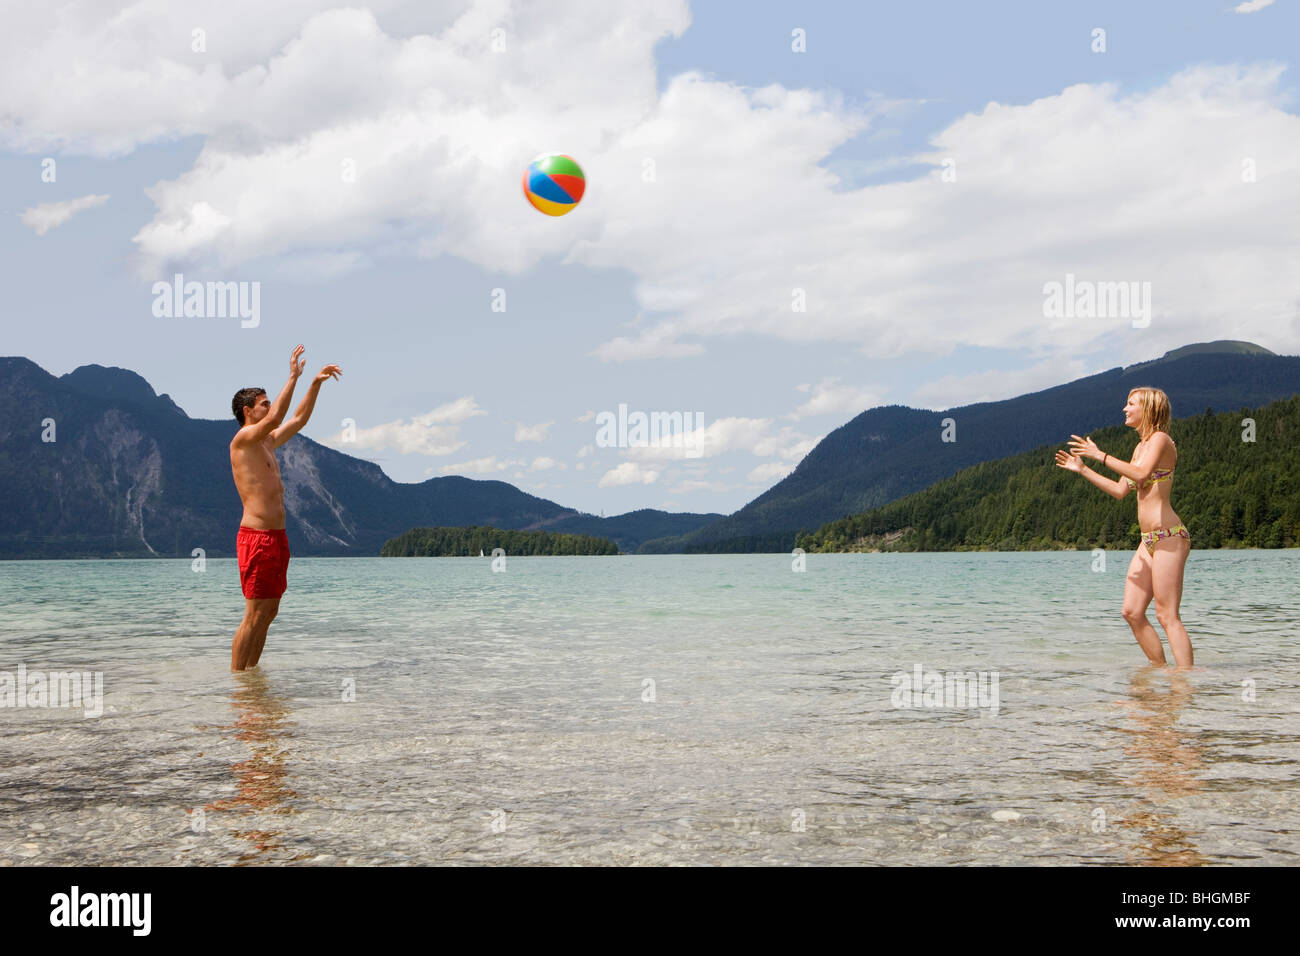 A young couple playing with a beach ball - Stock Image